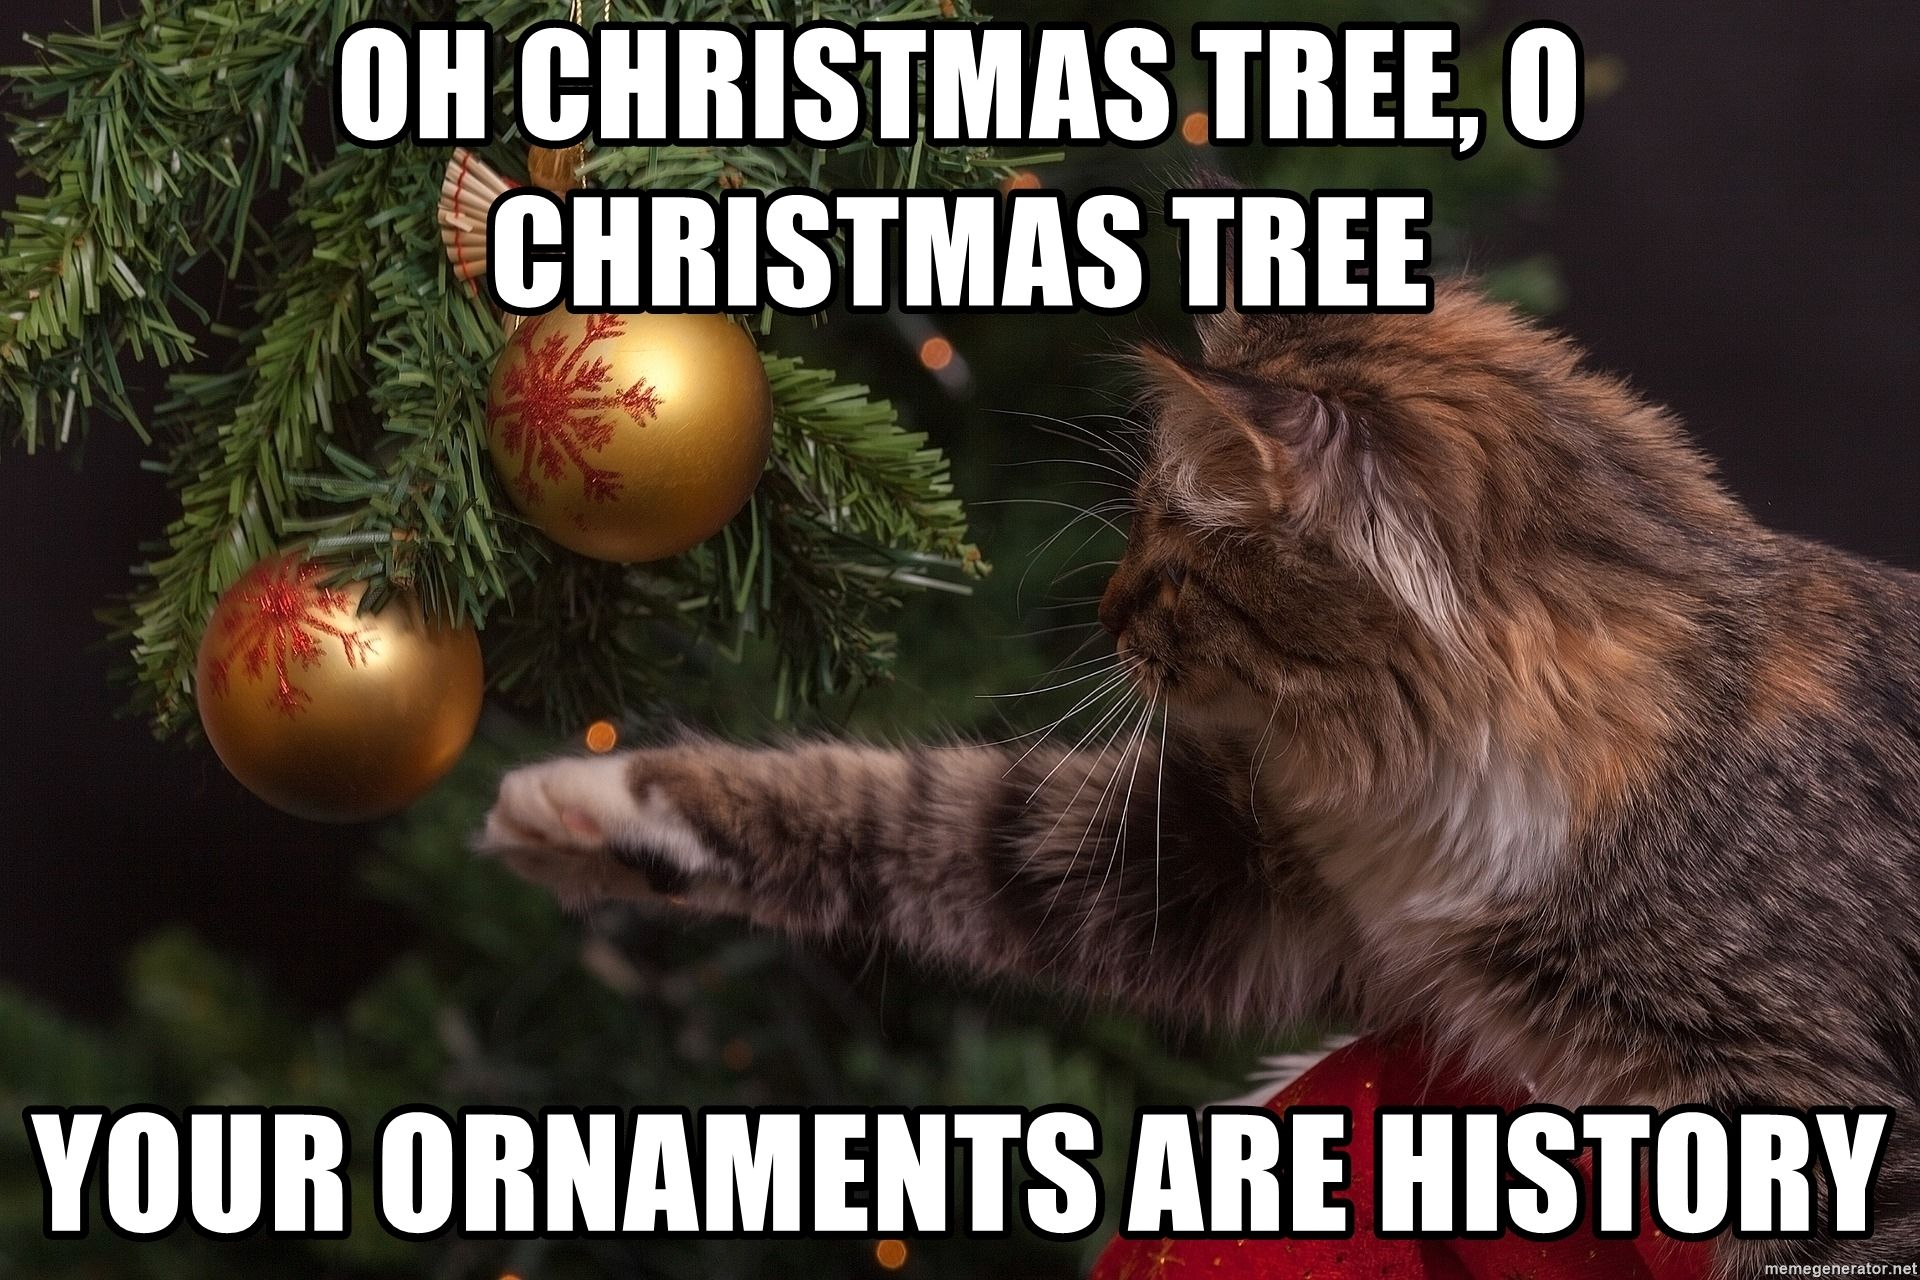 Cat Playing With Christmas Tree Ornaments Via Meme Generator Christmas Tree Tree Christmas Tree Ornaments